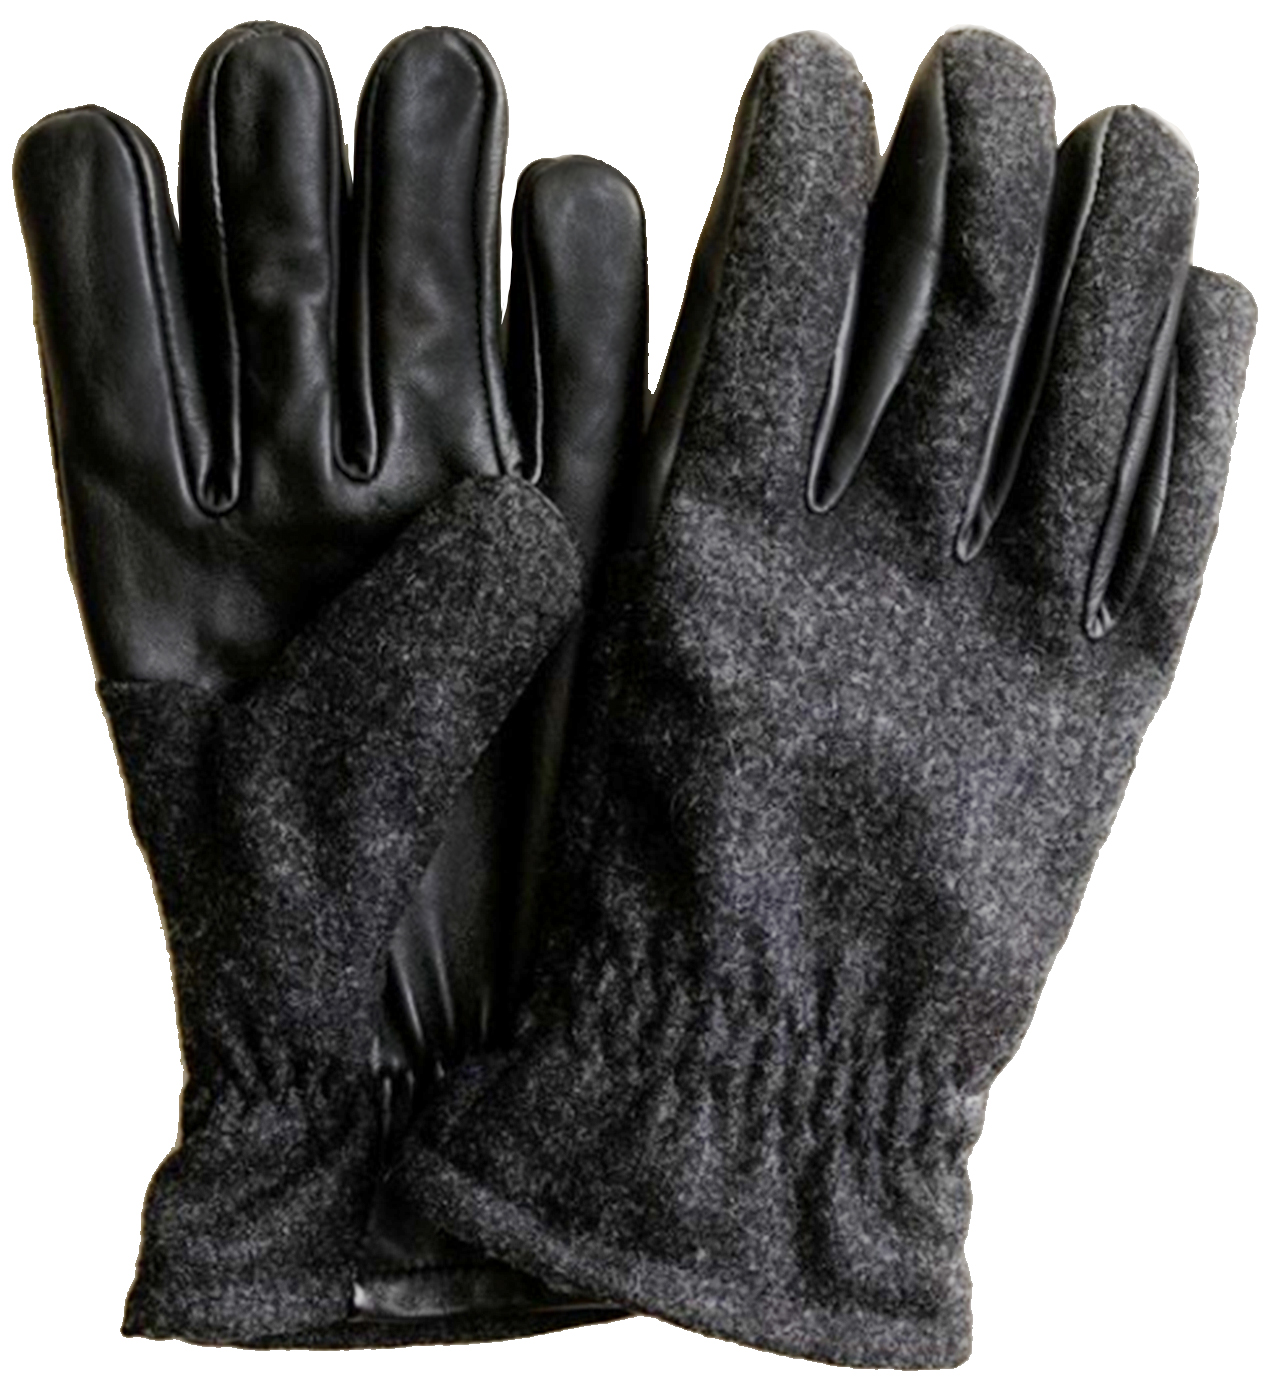 Wool Leather Touchtec Gloves